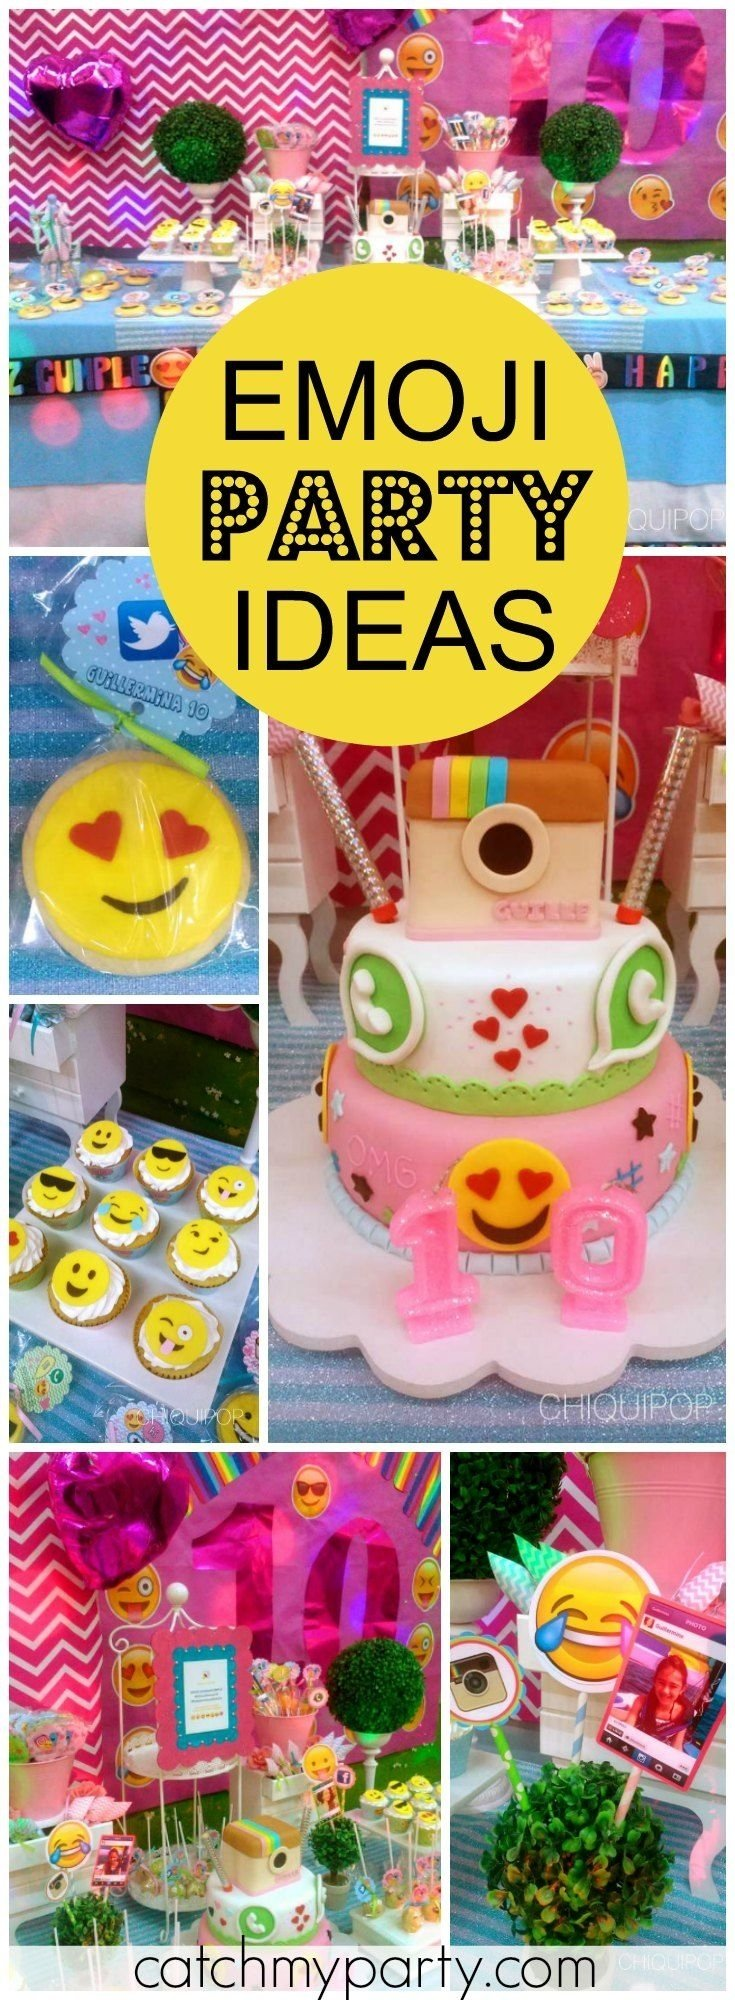 10 Stylish Fun Birthday Ideas For Girls insta face emoji birthday a fun holiday for guillerminas 10th 6